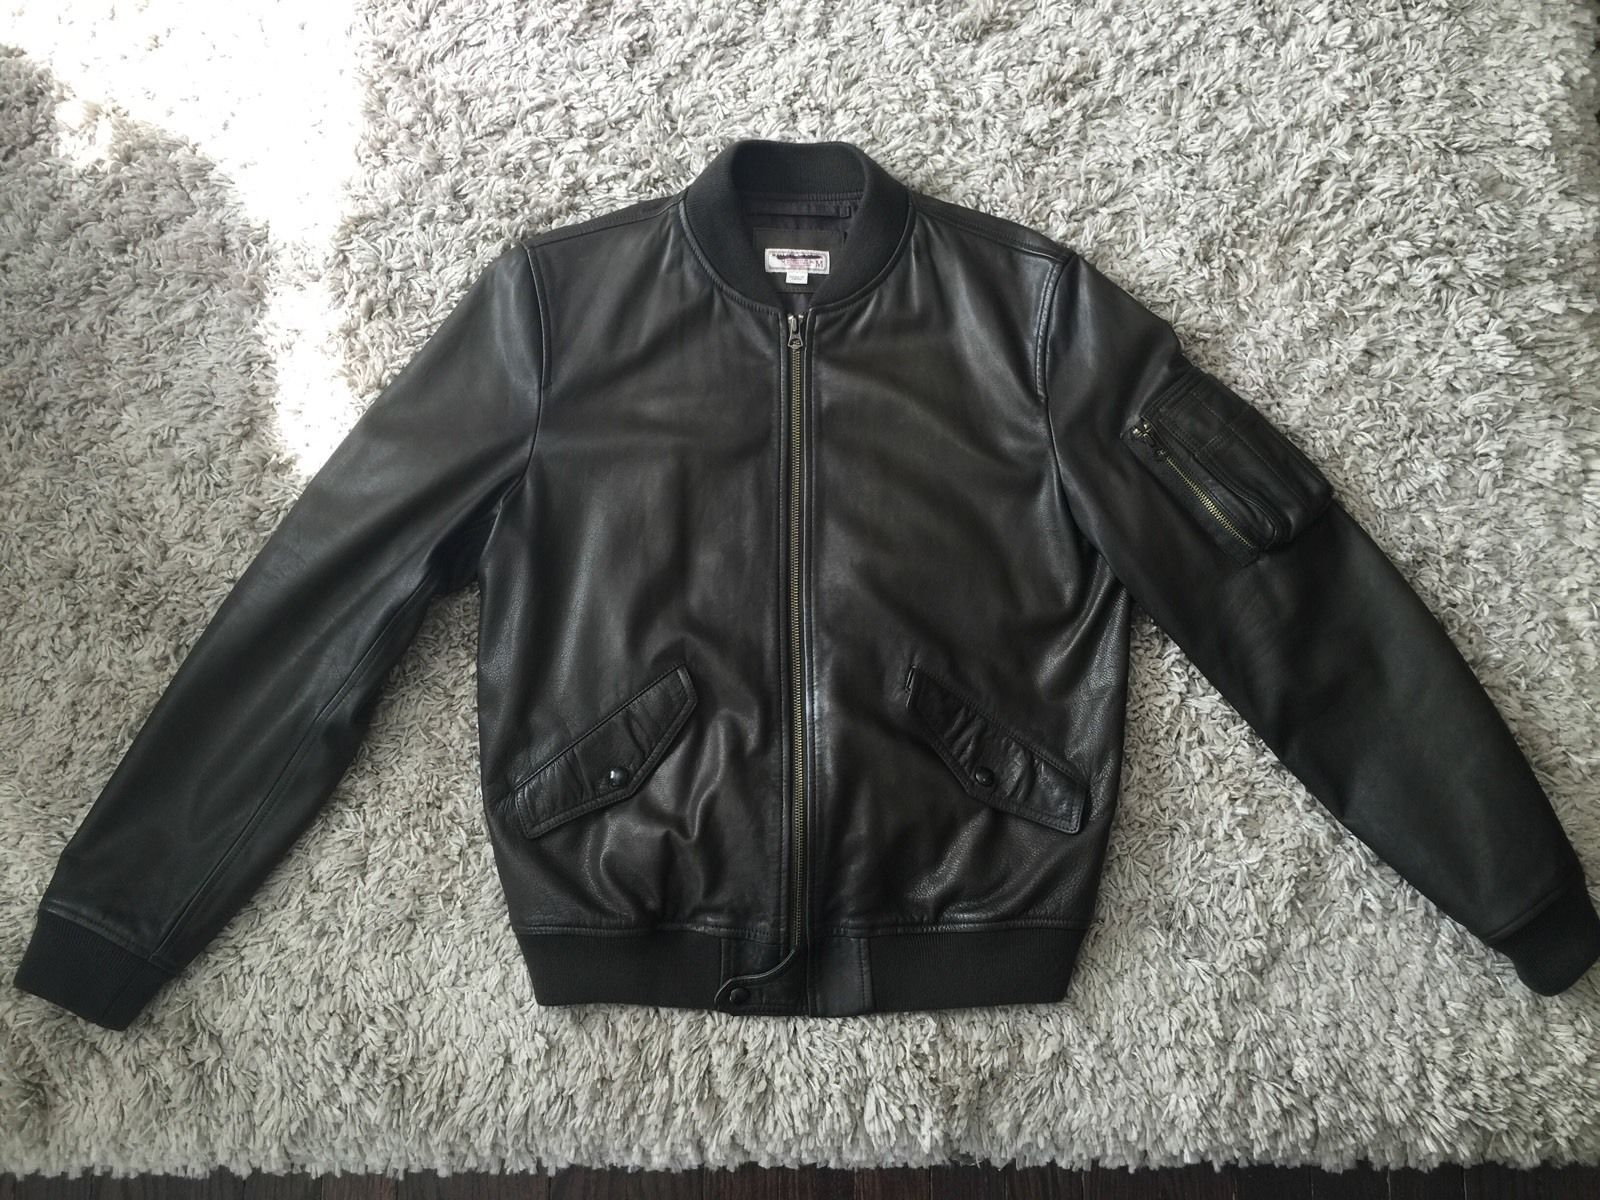 47fdc2d2b774a J.Crew Wallace & Barnes Leather MA-1 Bomber Jacket in Fatigue - Size Medium